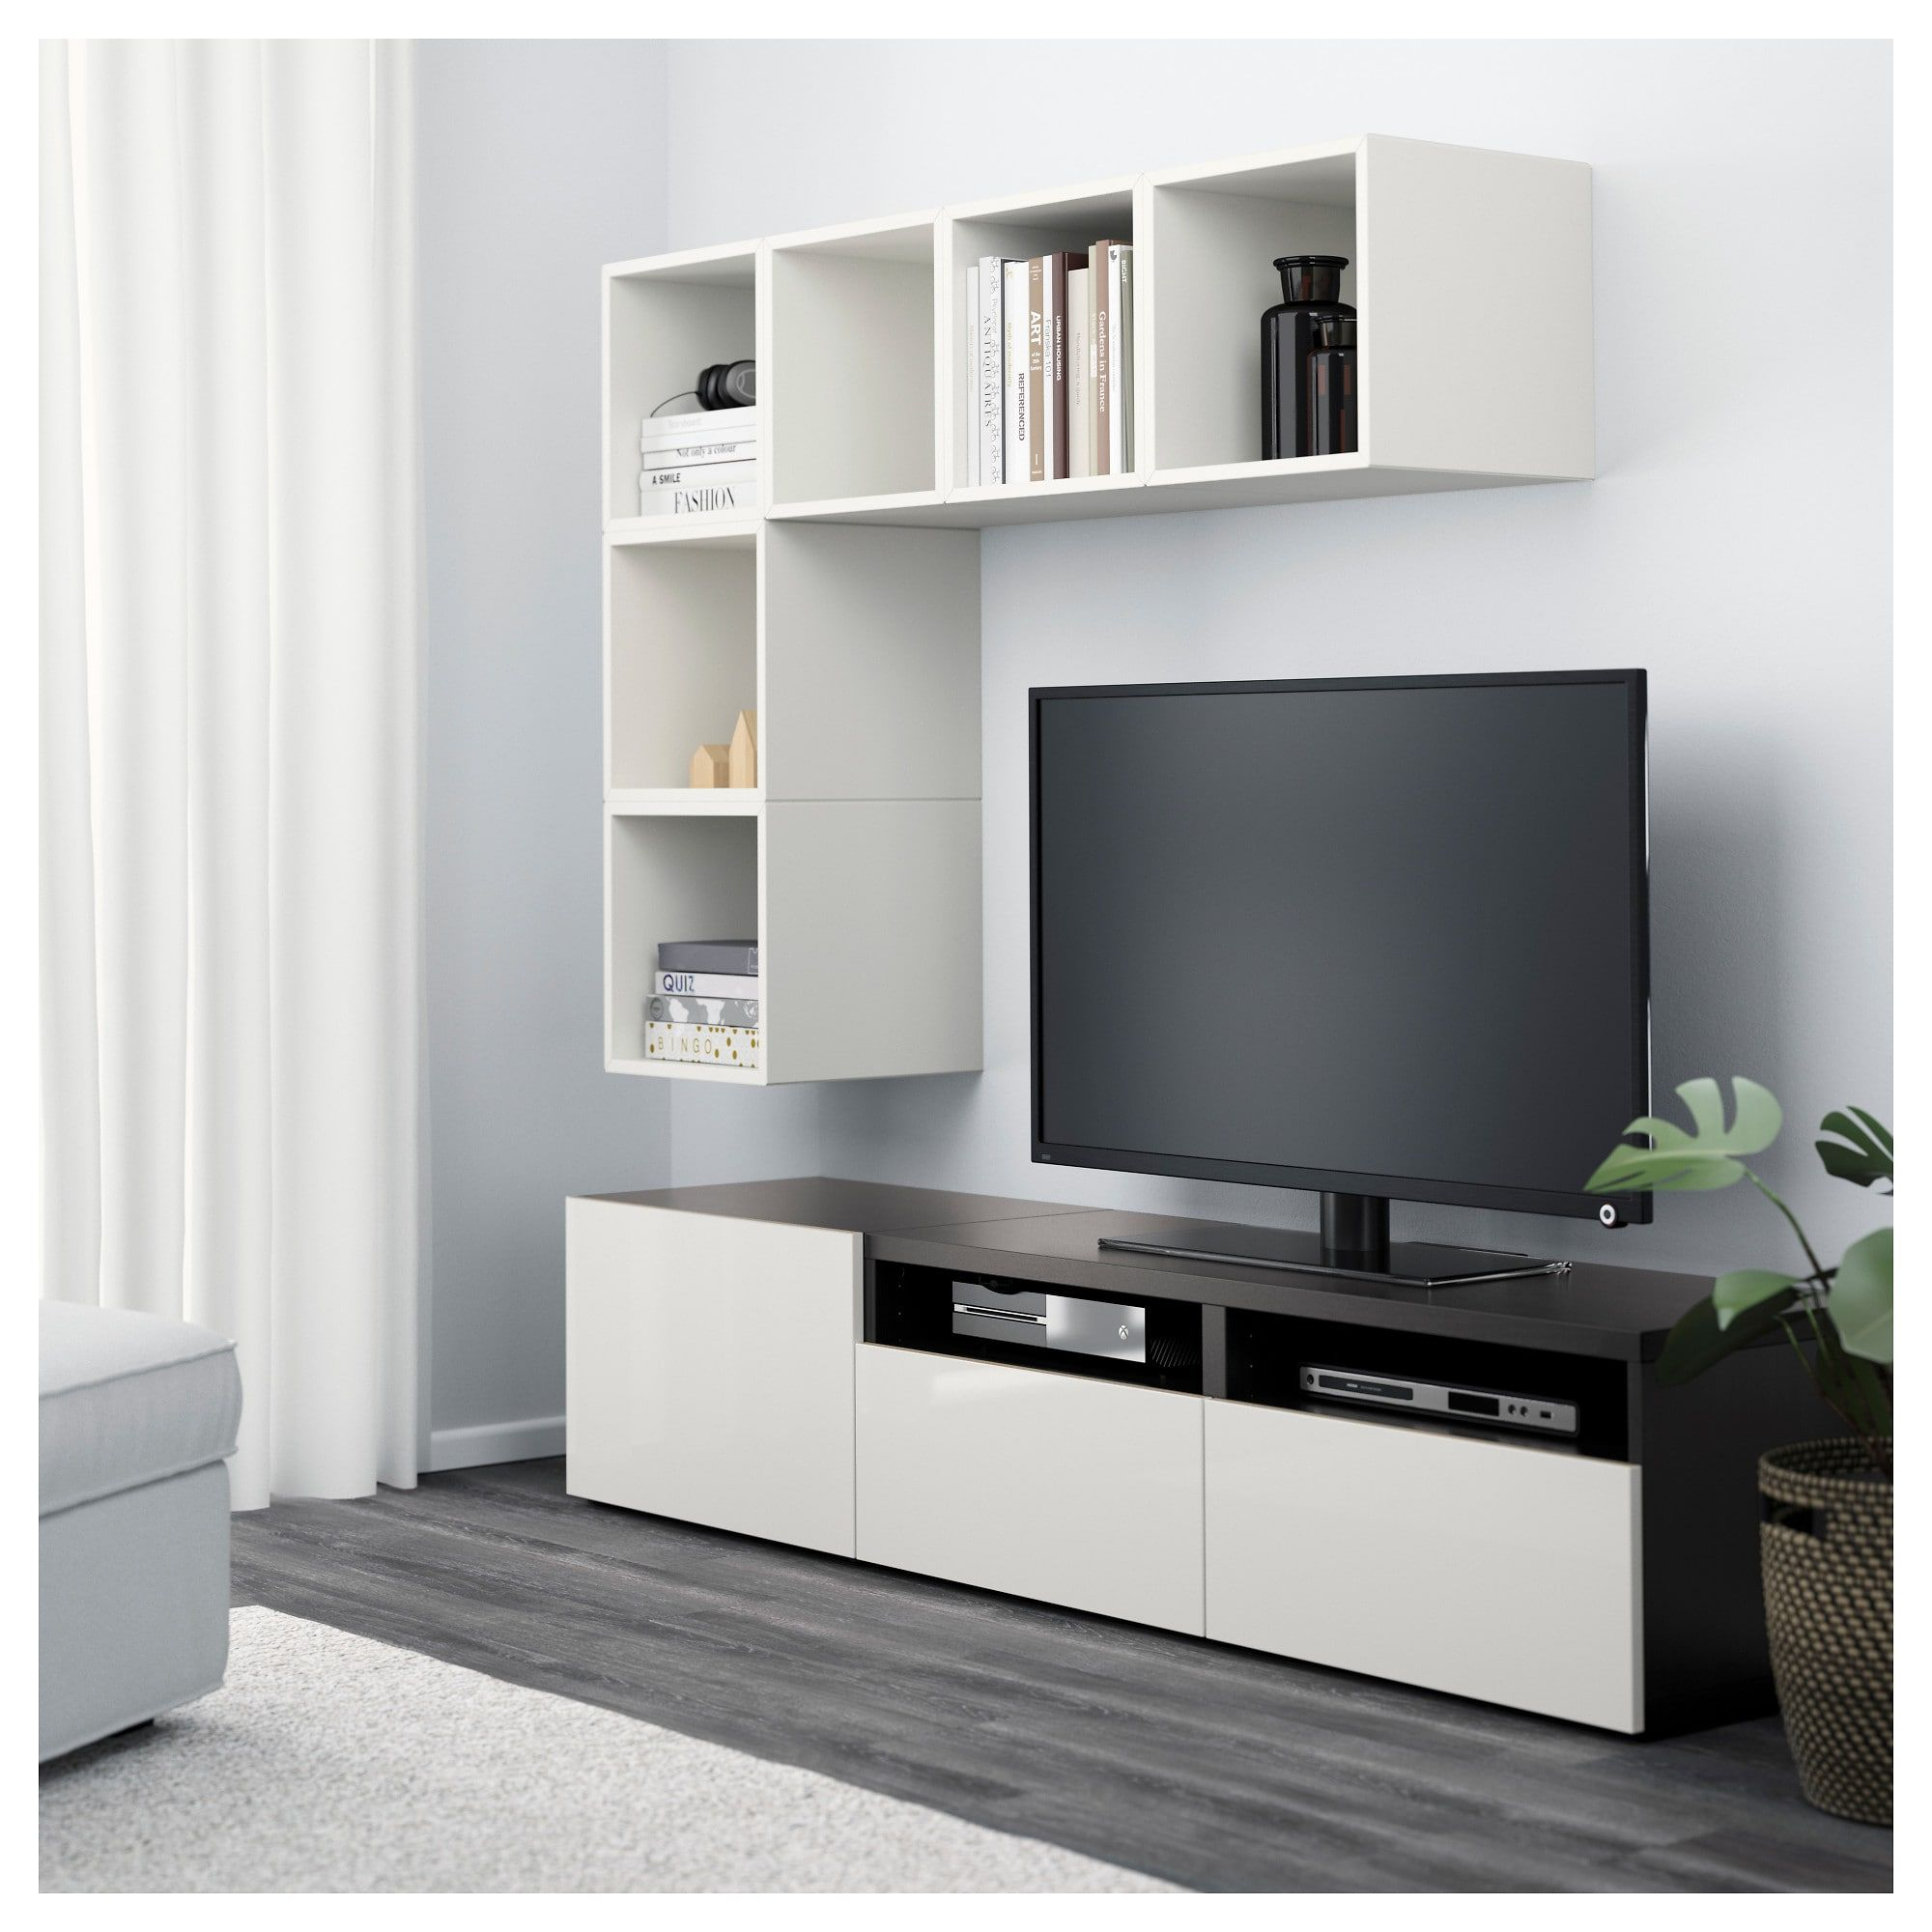 Tv Kast 70 Cm.Besta Eket Tv Storage Combination White Black Brown High